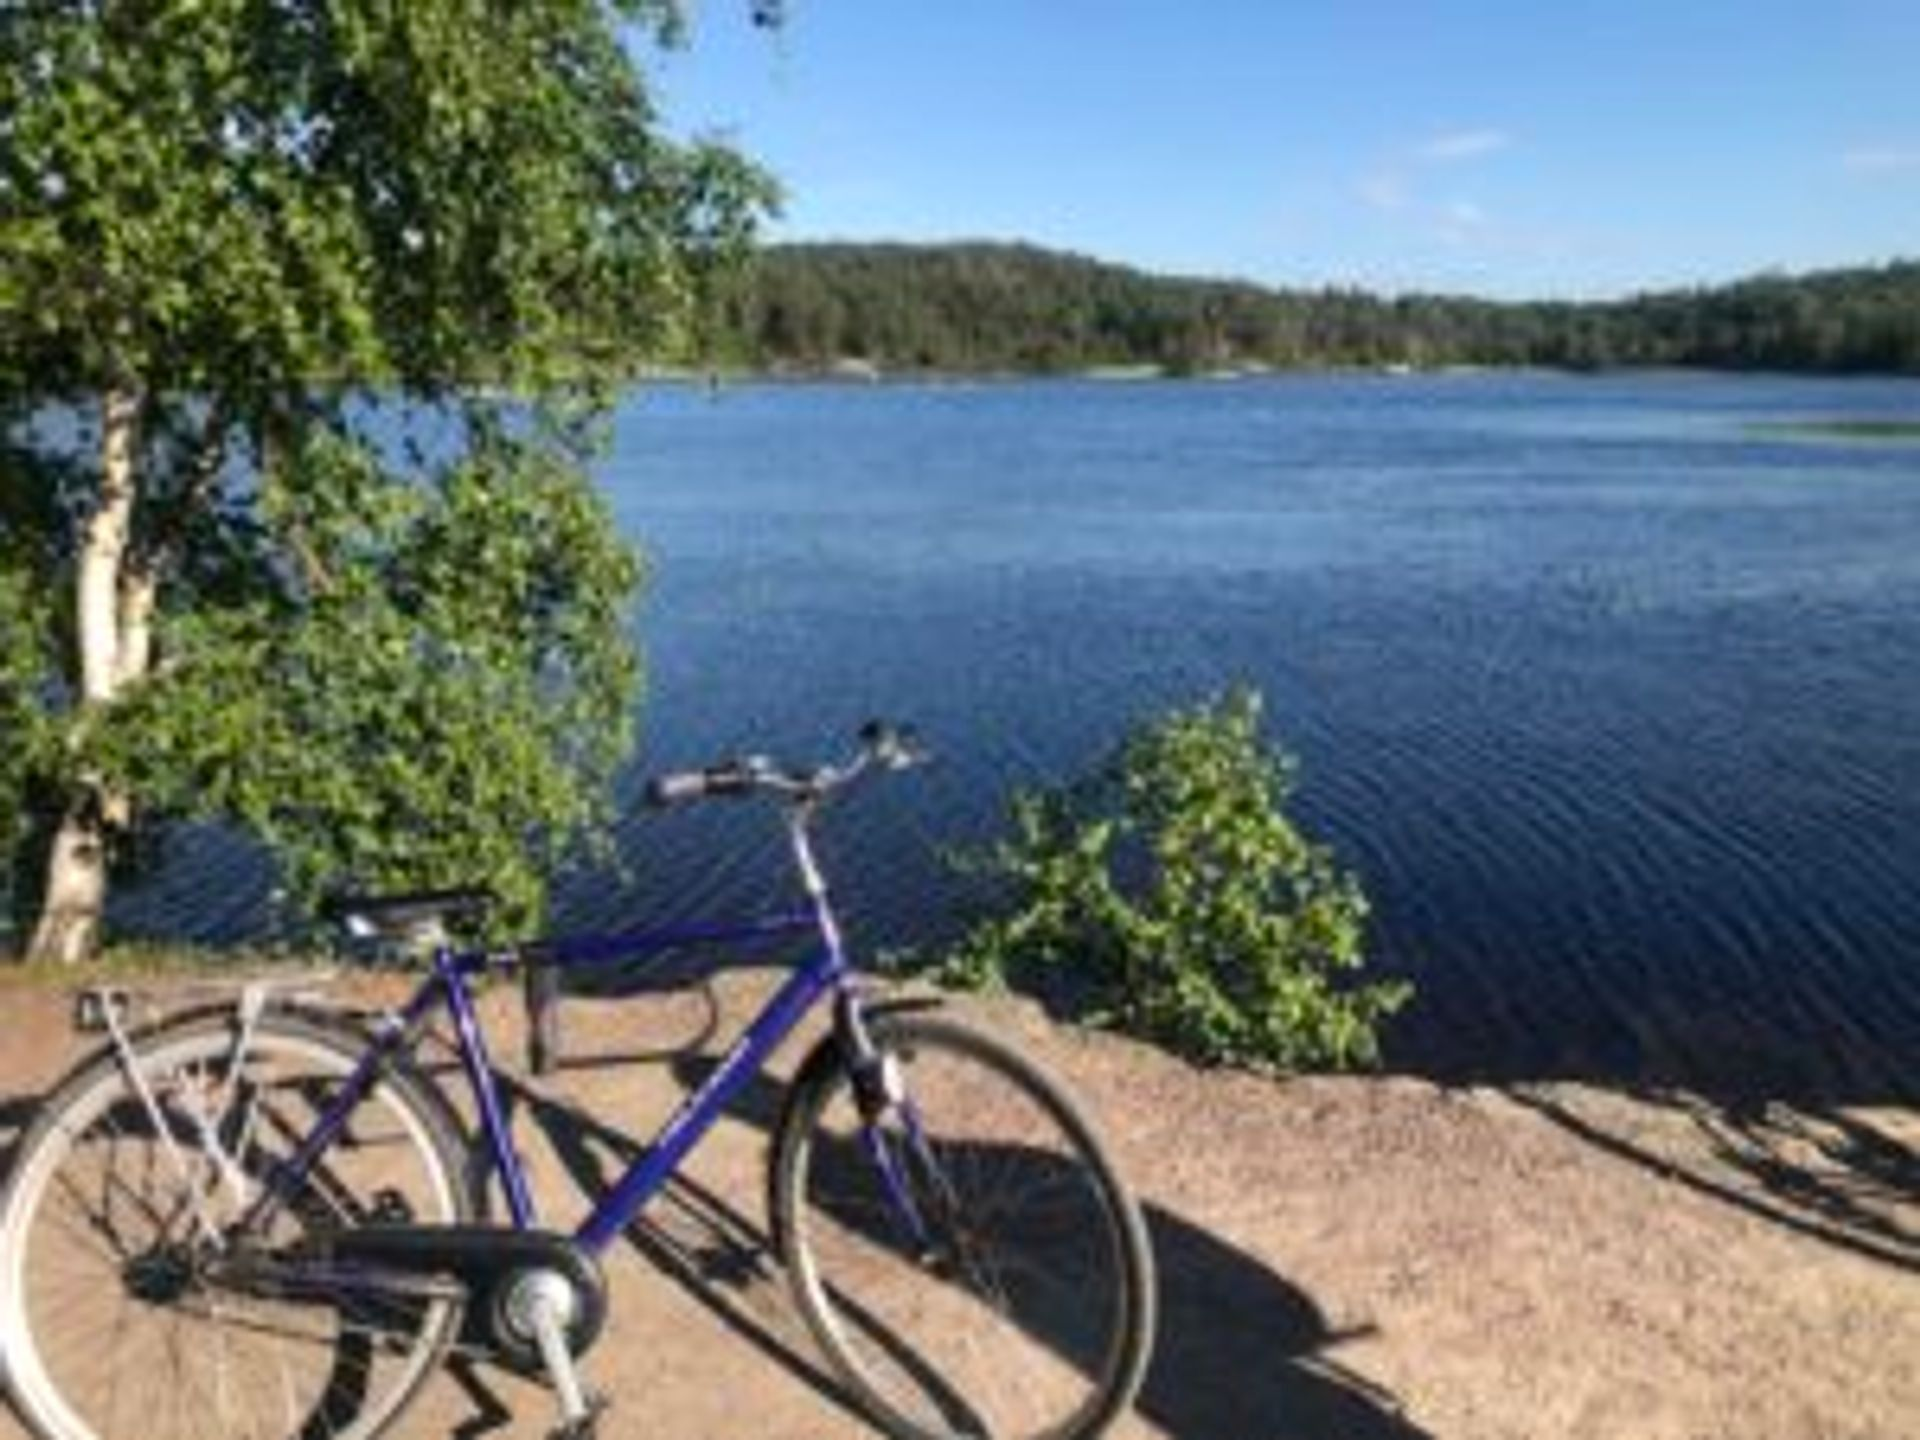 Camilo's blue bicycle in front of a lake.